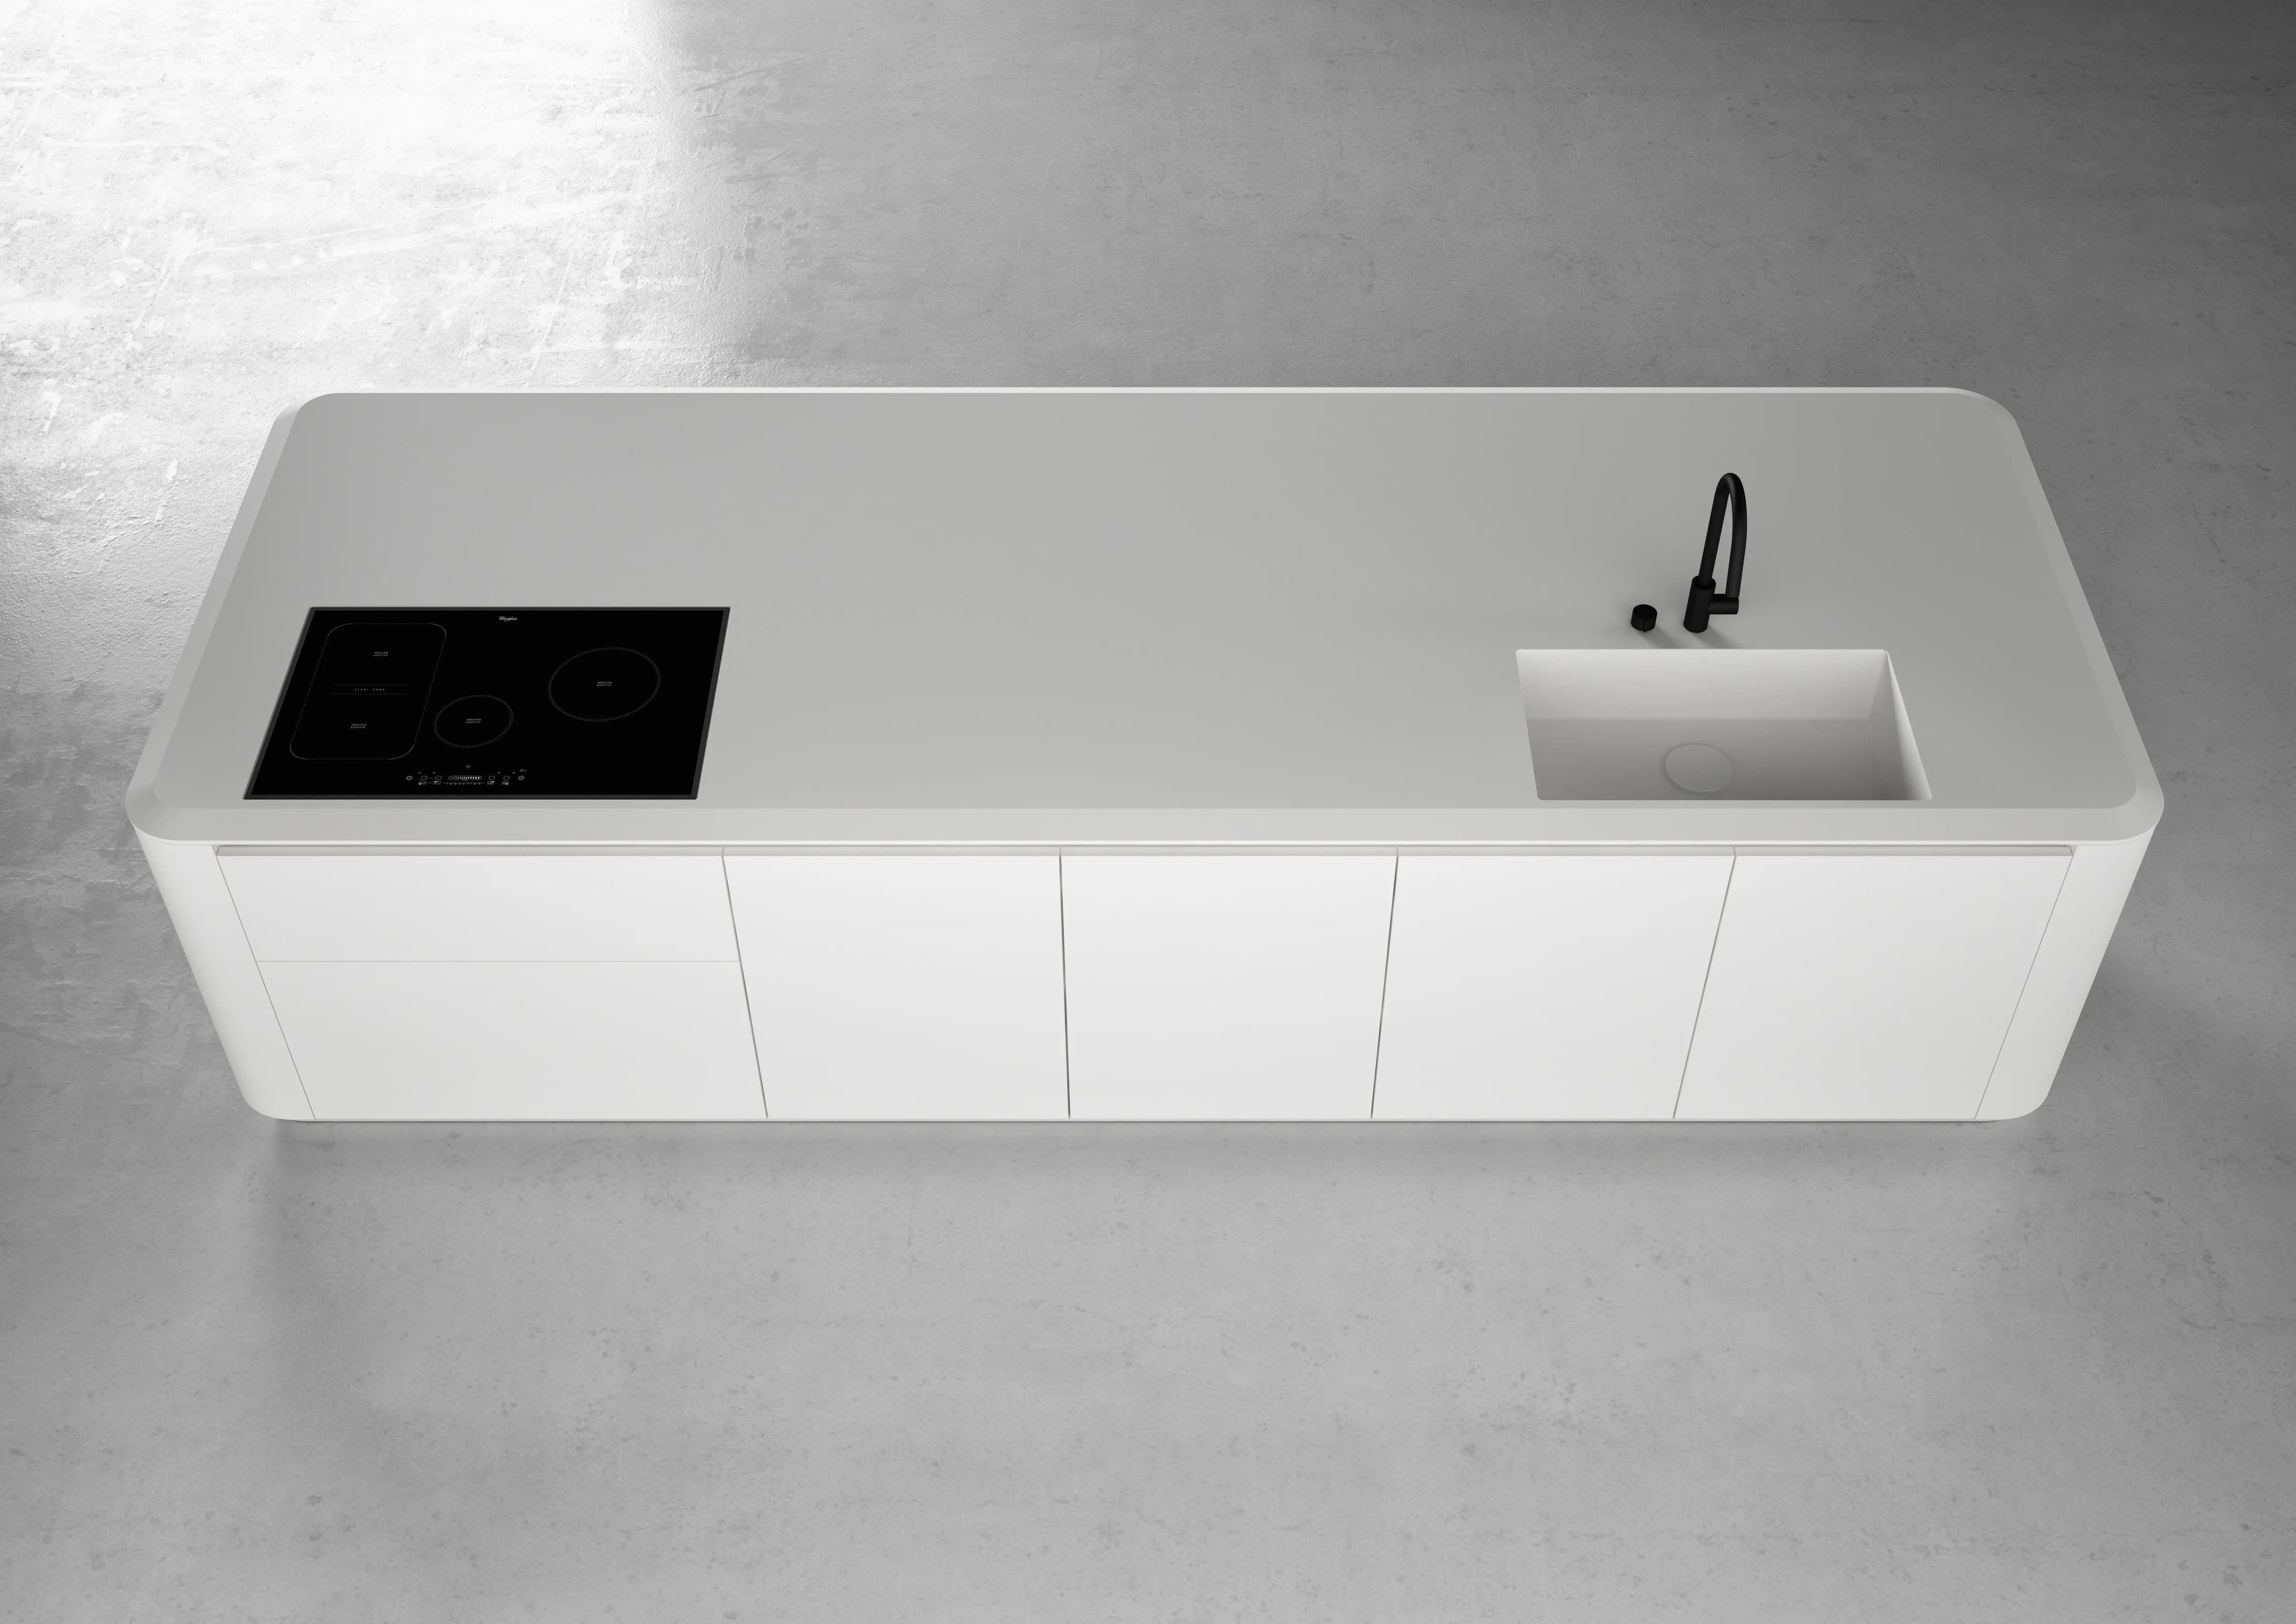 Boffi Cuisine Boffi Releases The Cove Kitchen By Zaha Hadid Design